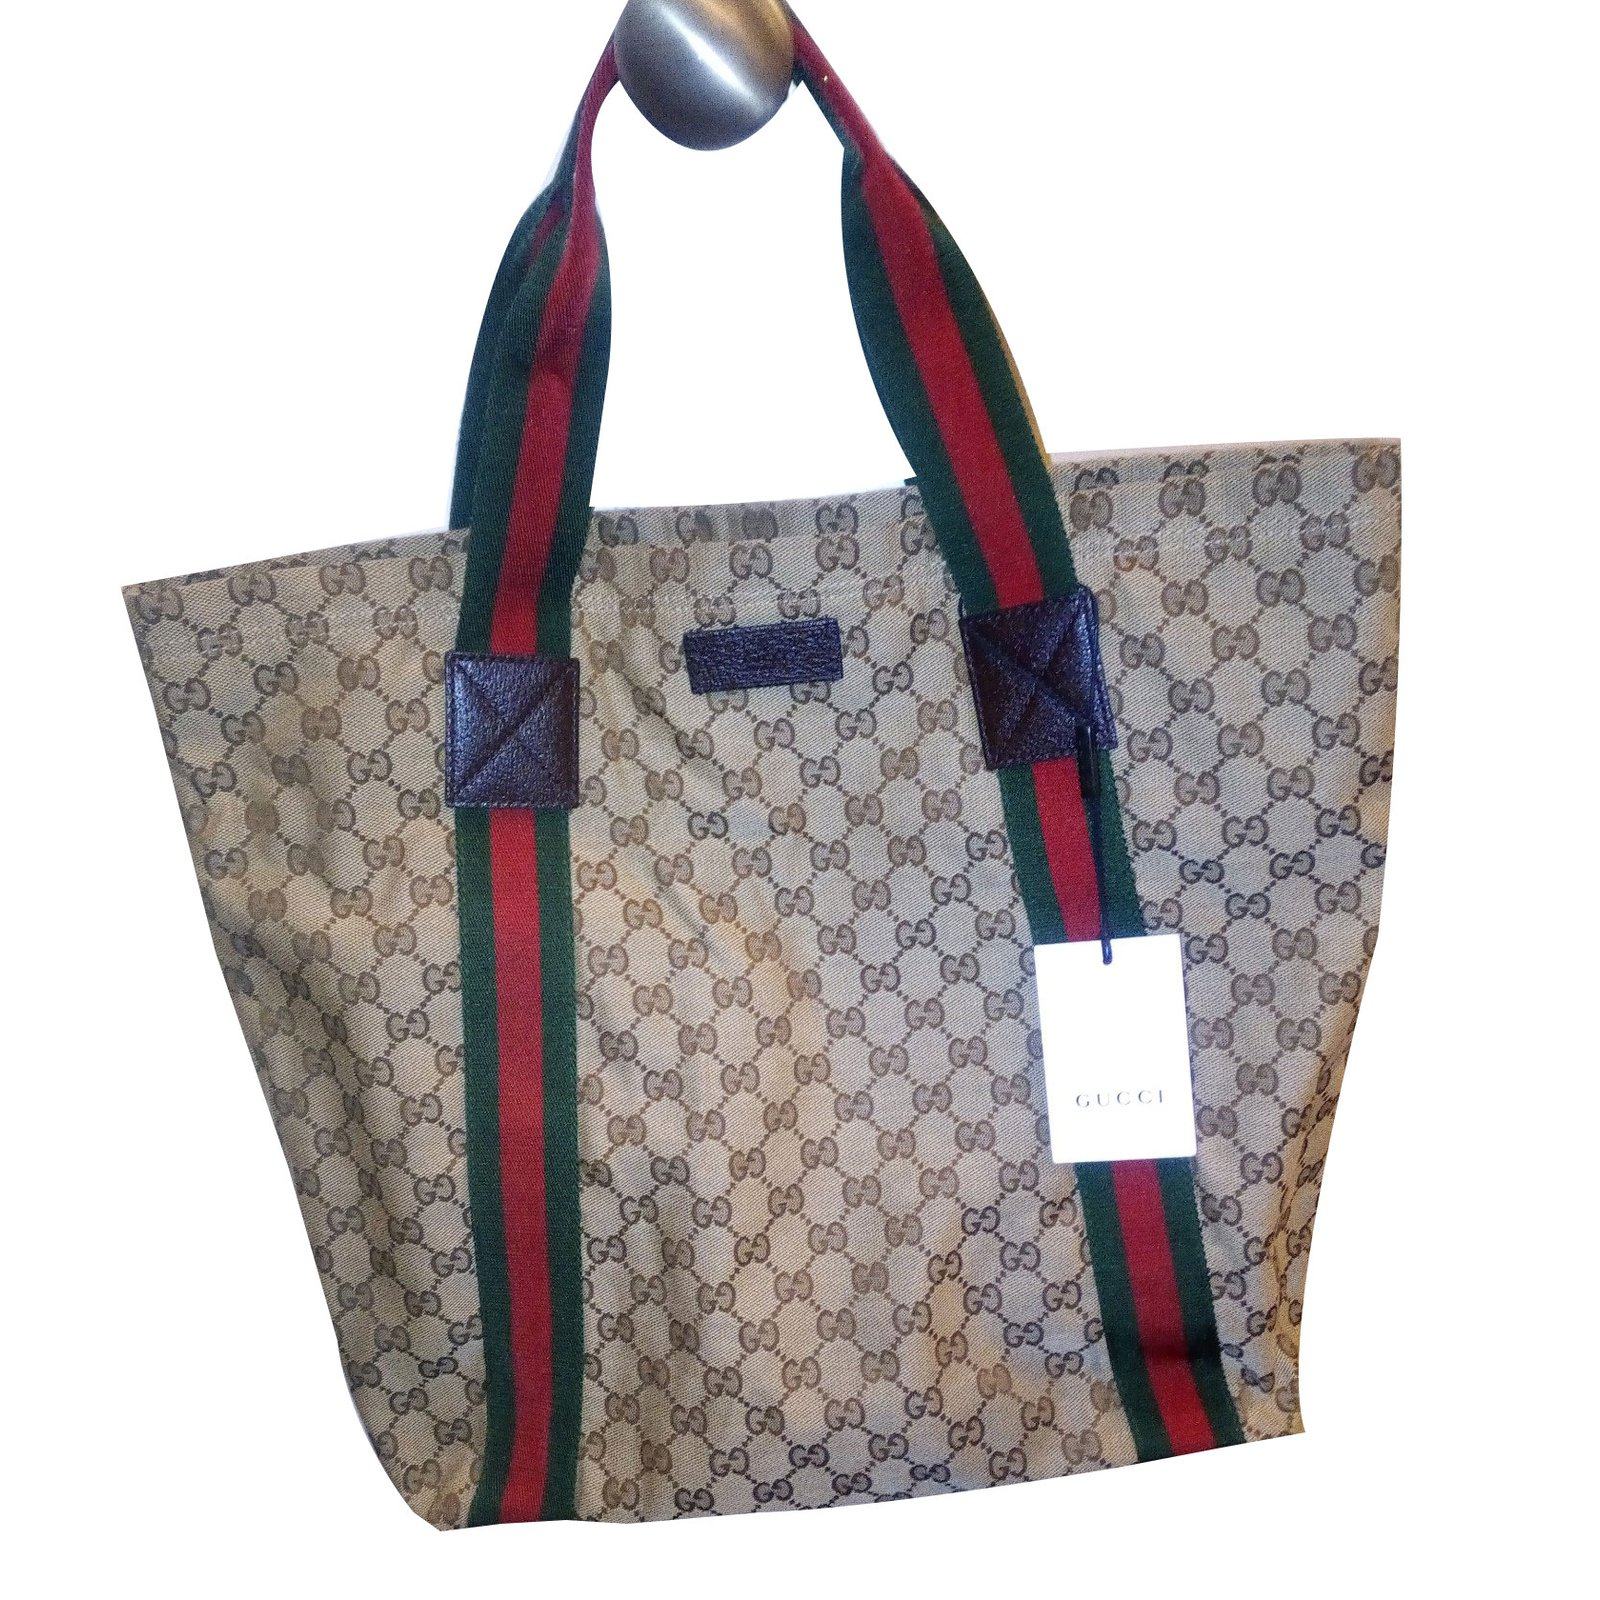 Gucci Gg Web Detail Canvas Beige Tote Bag New With Tags Handbags Cloth